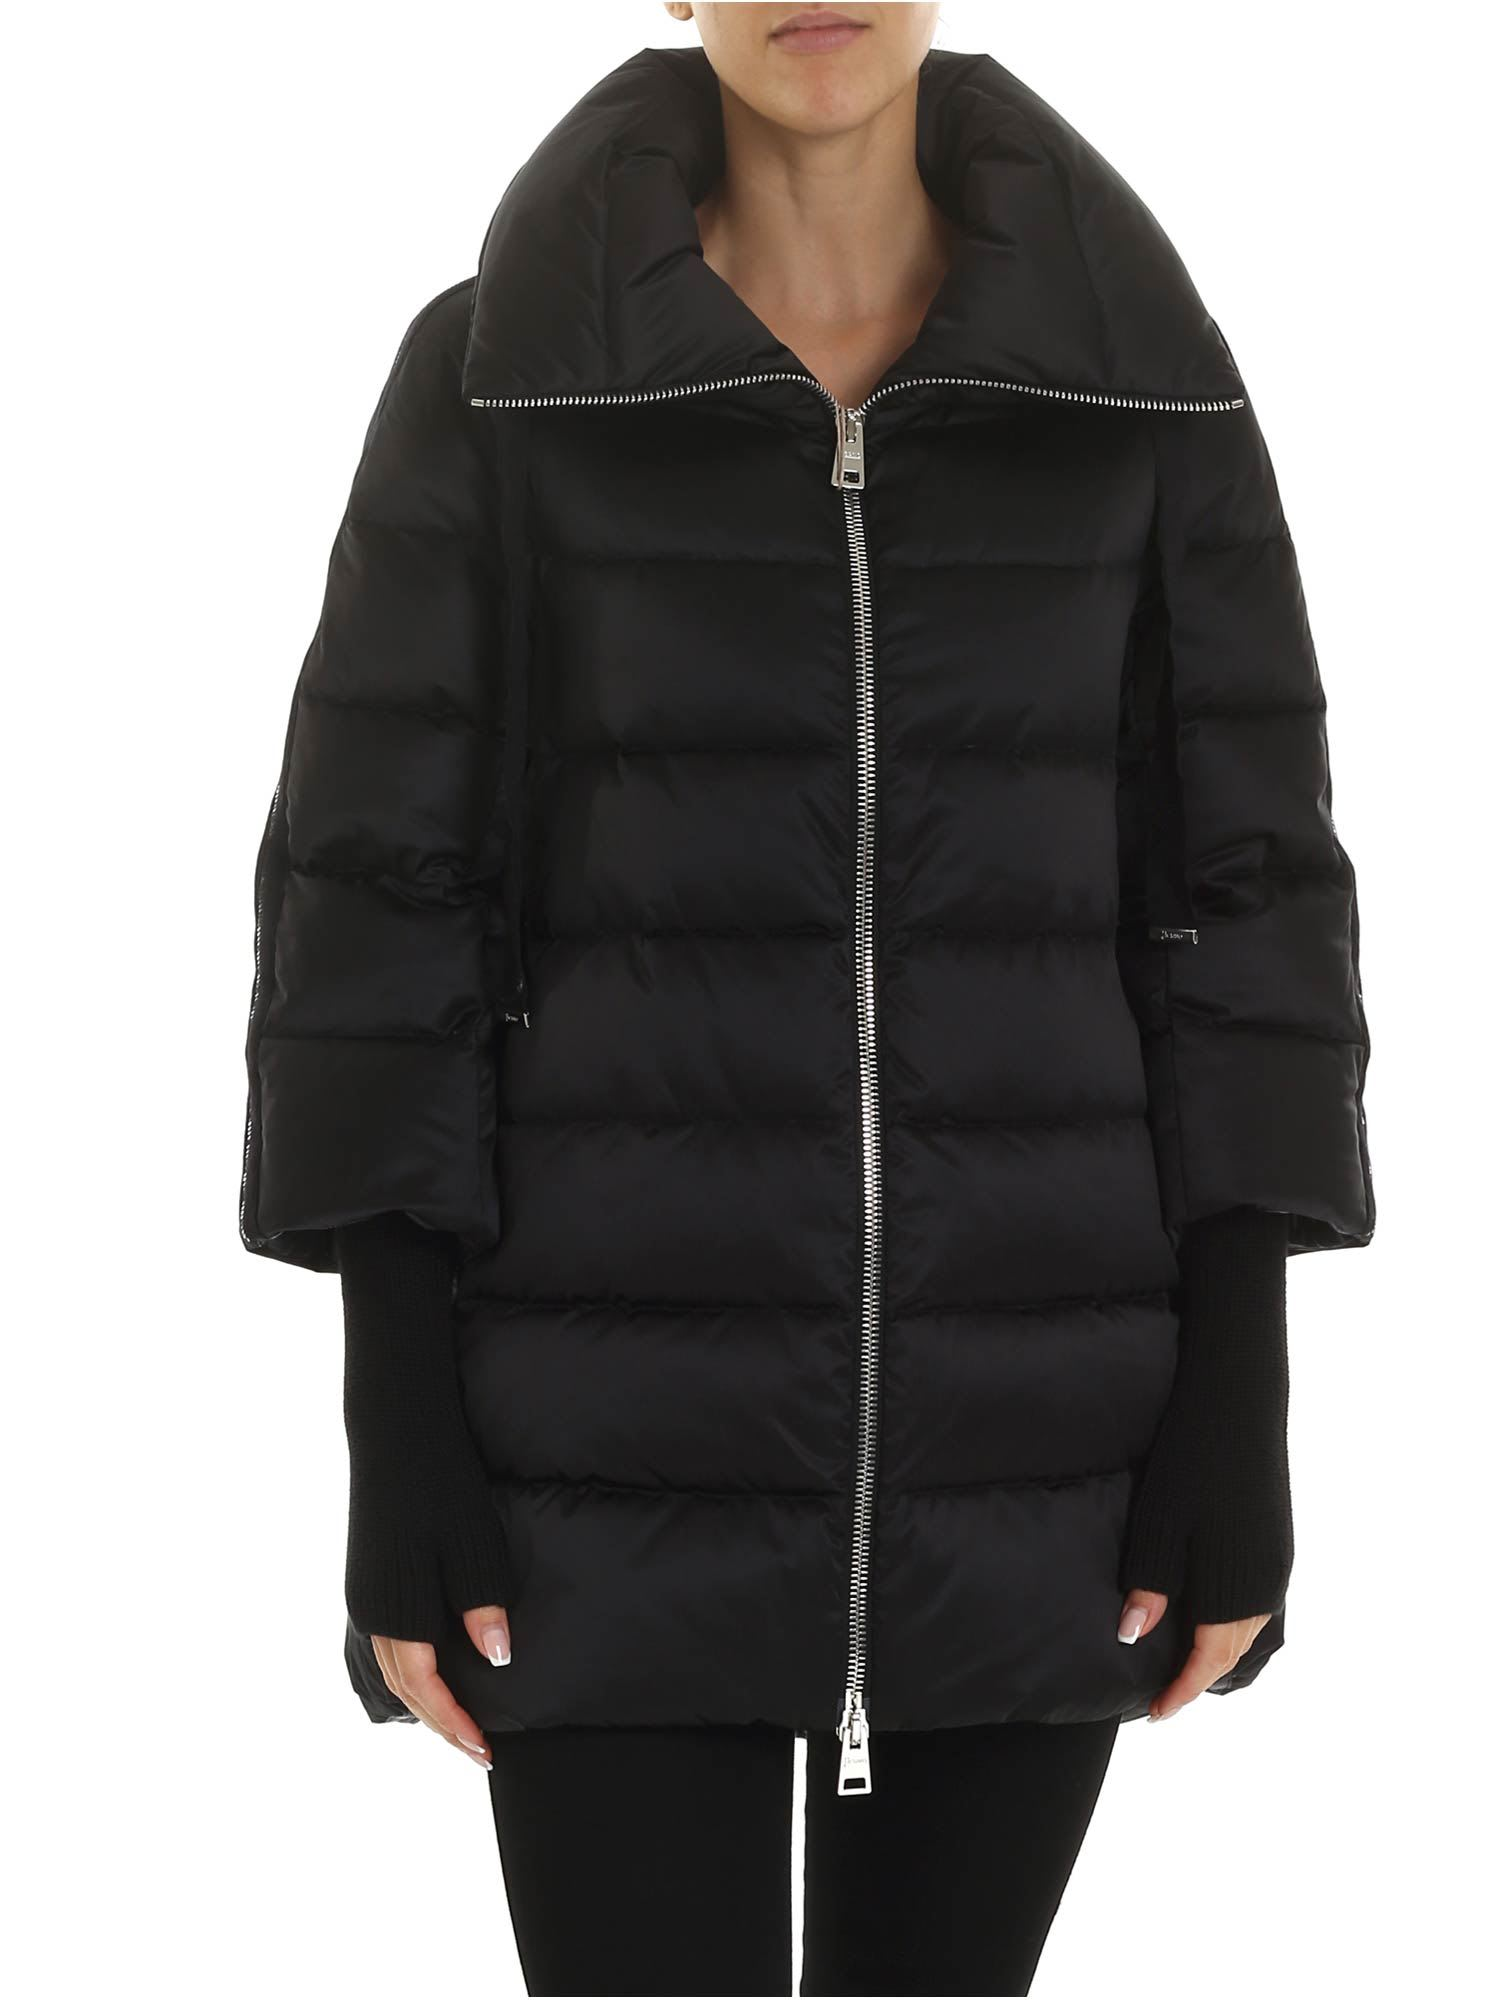 Herno – Resort Jacket With Knitted Sleeves